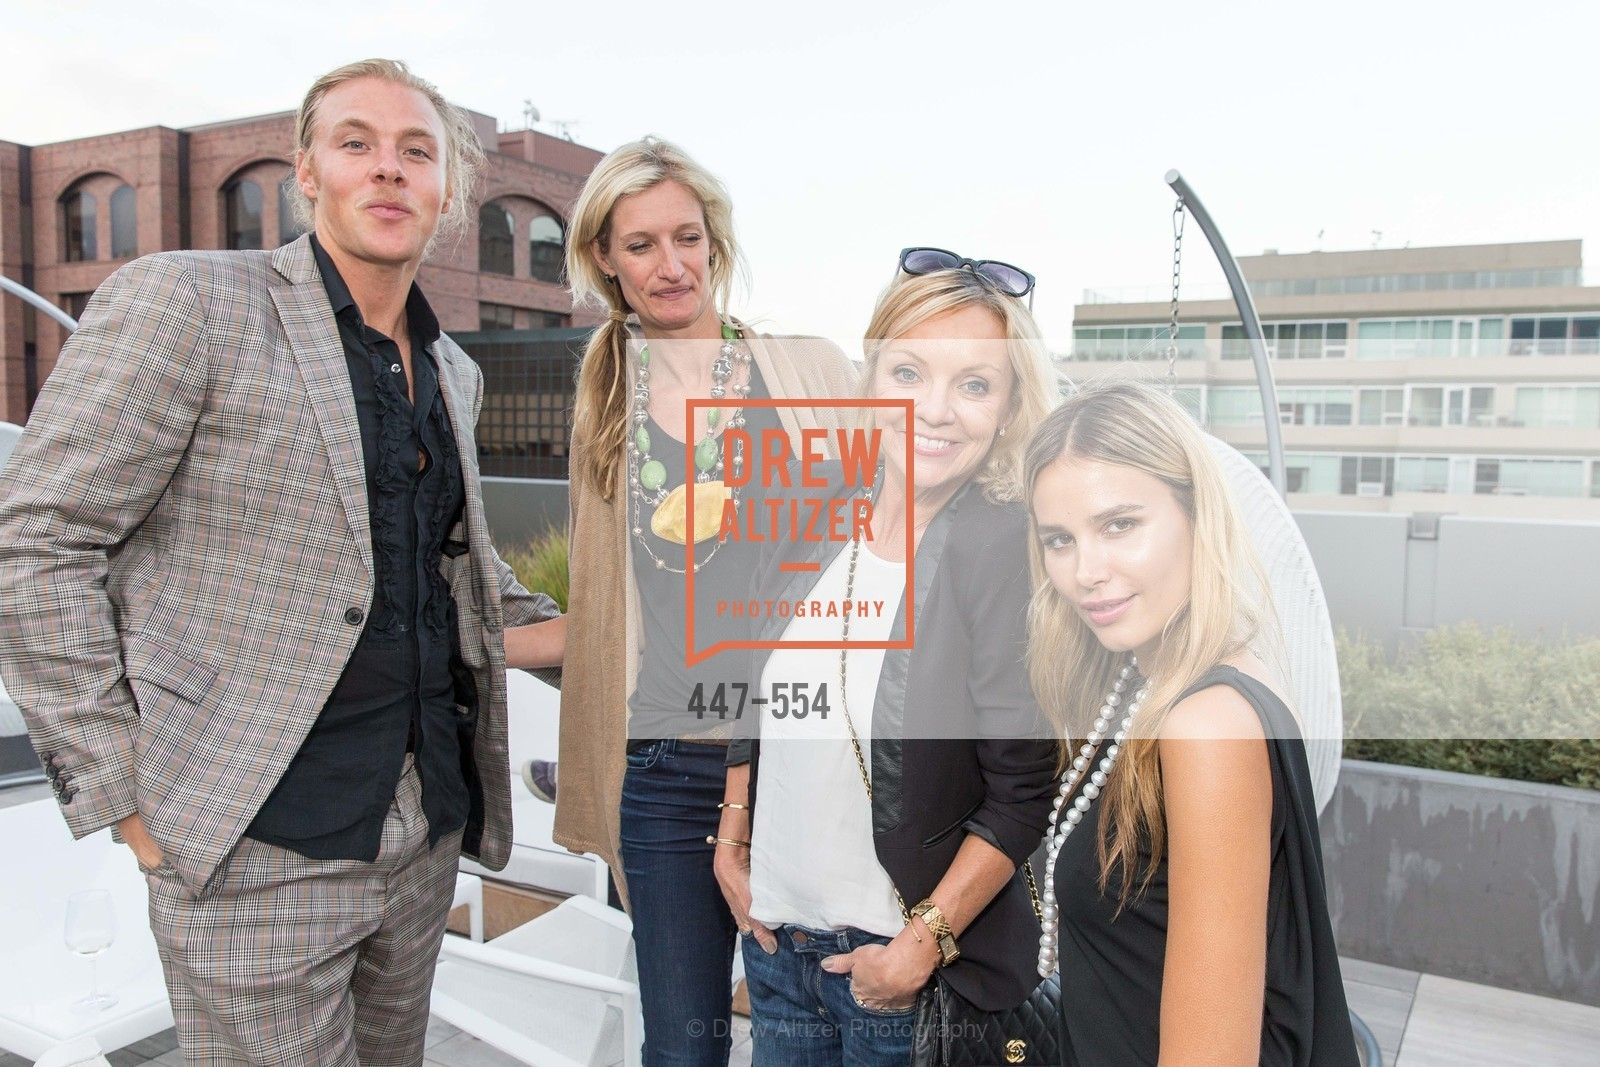 Will Hanigan, Noelle Nixon, Angie Silvy, Iskra Galic, CMH HELI SKIING Event, US, September 4th, 2014,Drew Altizer, Drew Altizer Photography, full-service agency, private events, San Francisco photographer, photographer california